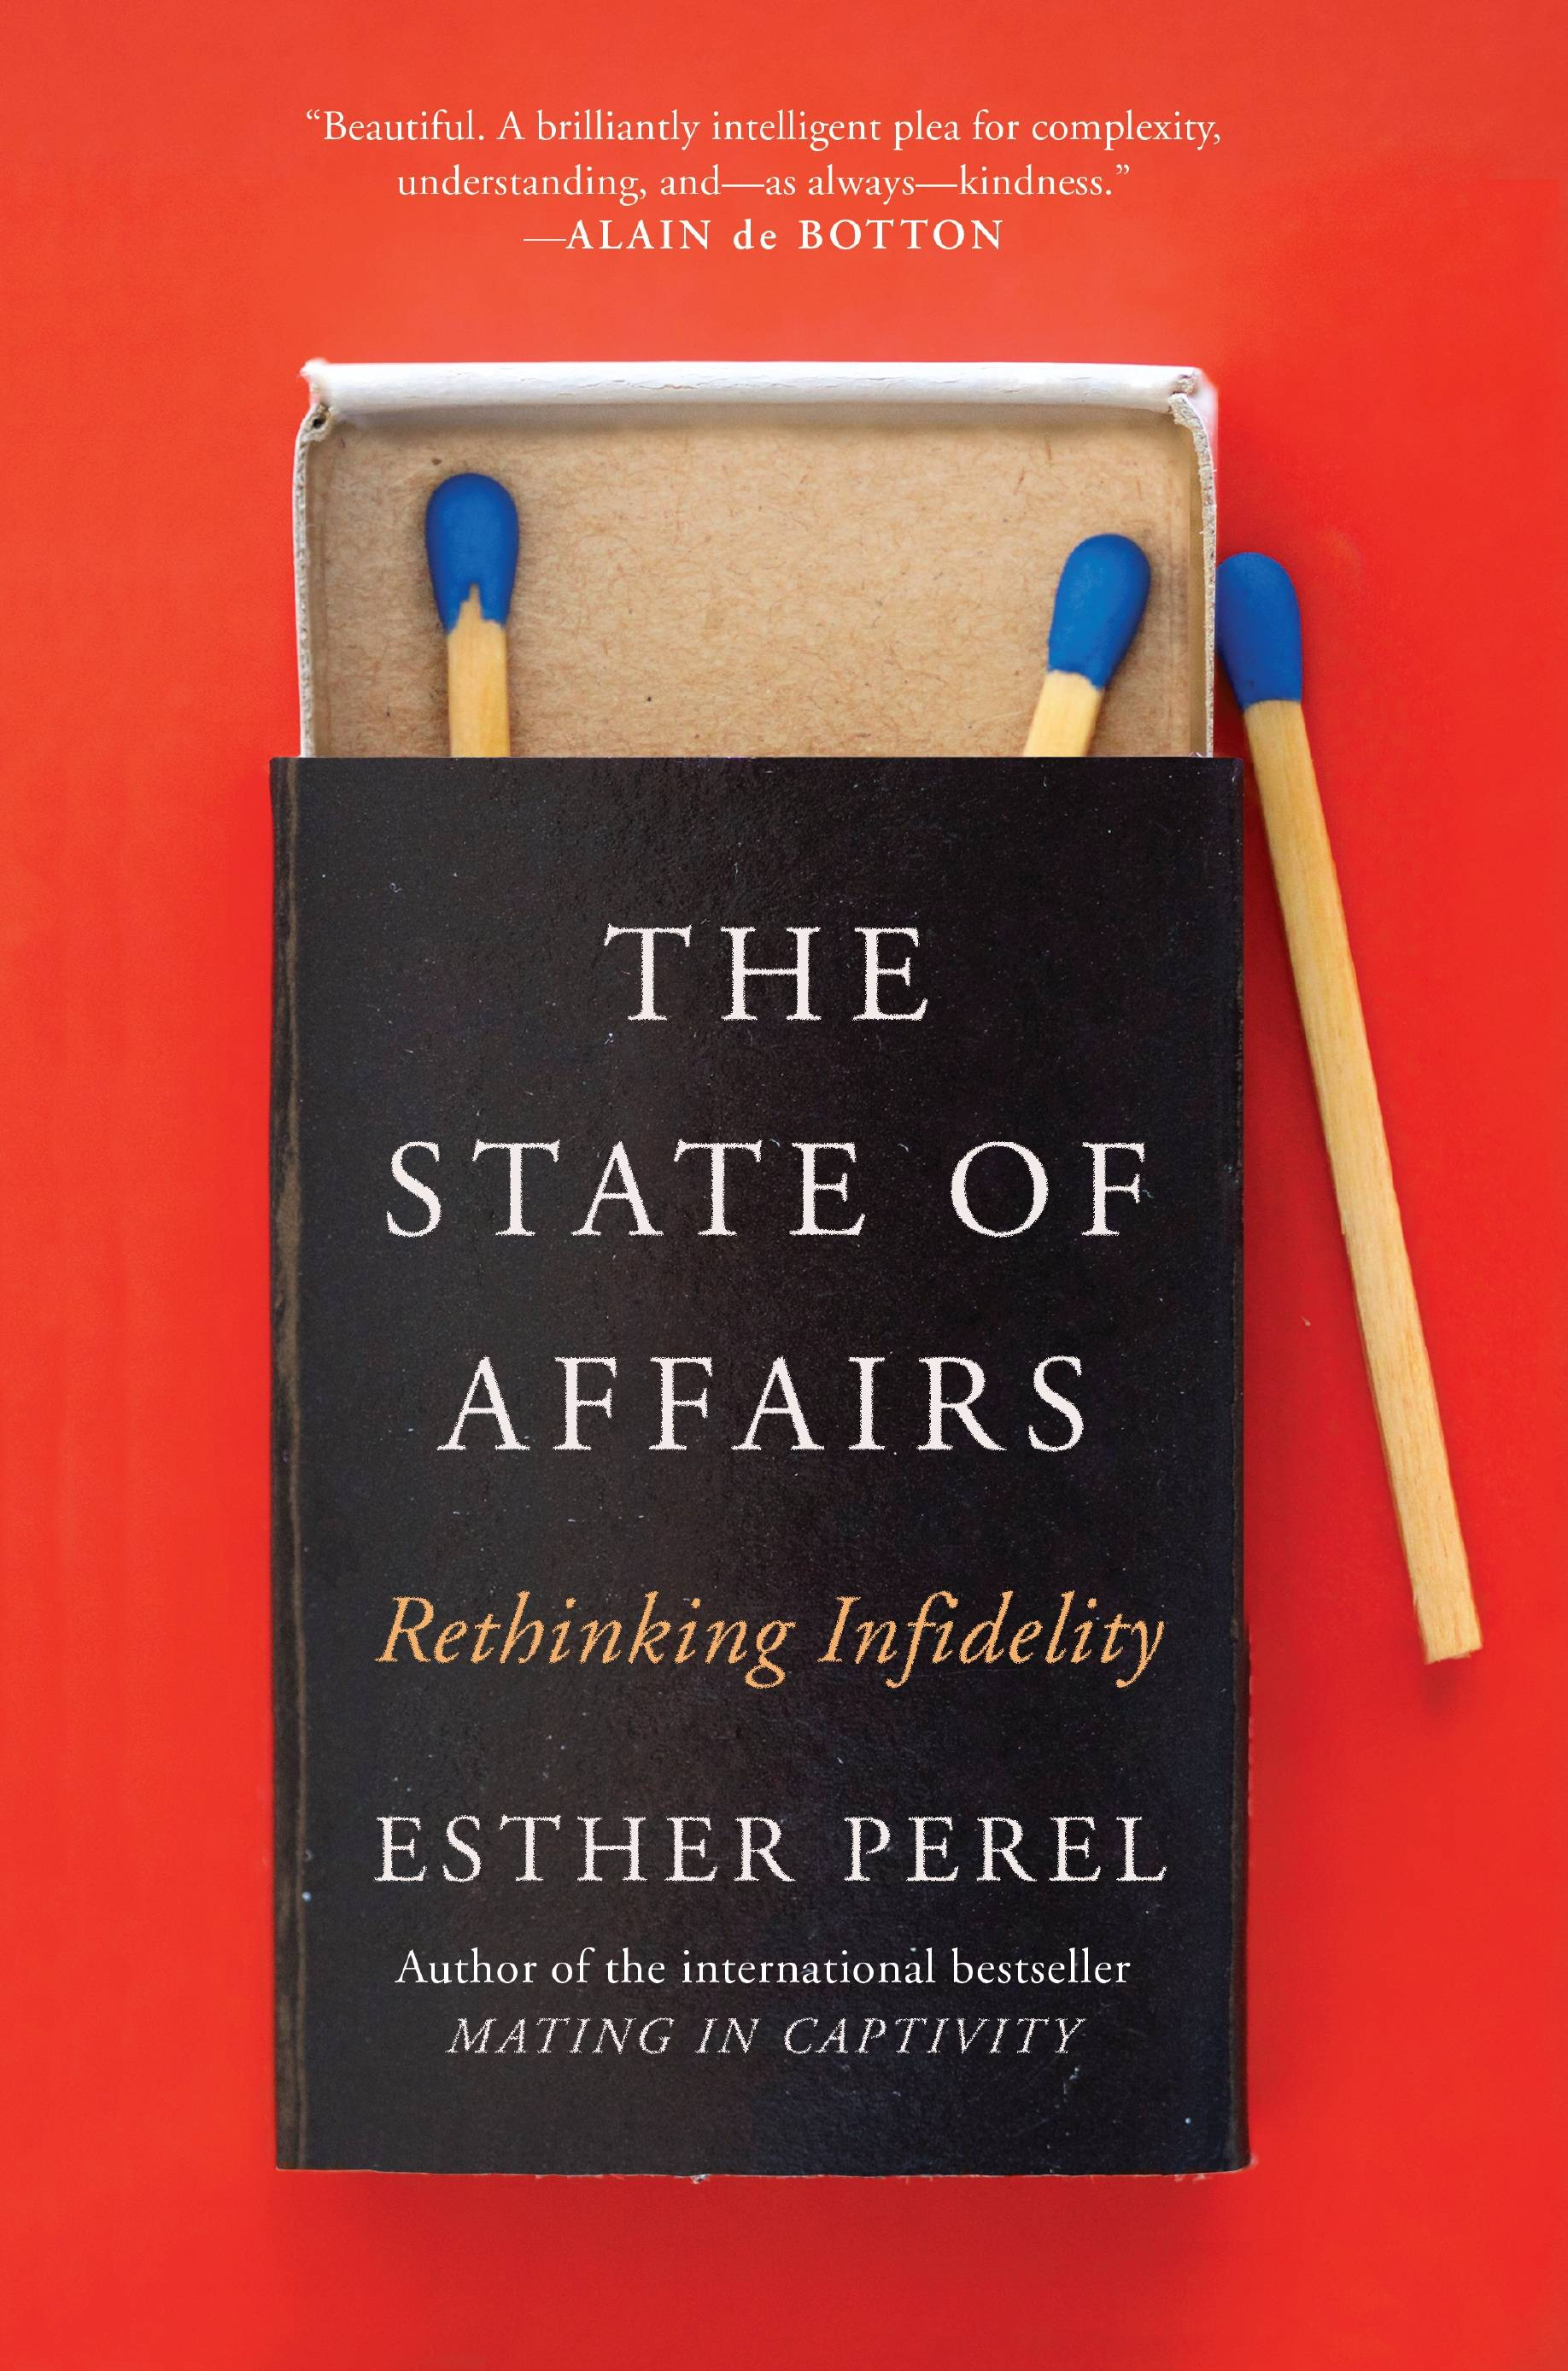 Therapist Esther Perel on how an affair can break – or remake – a